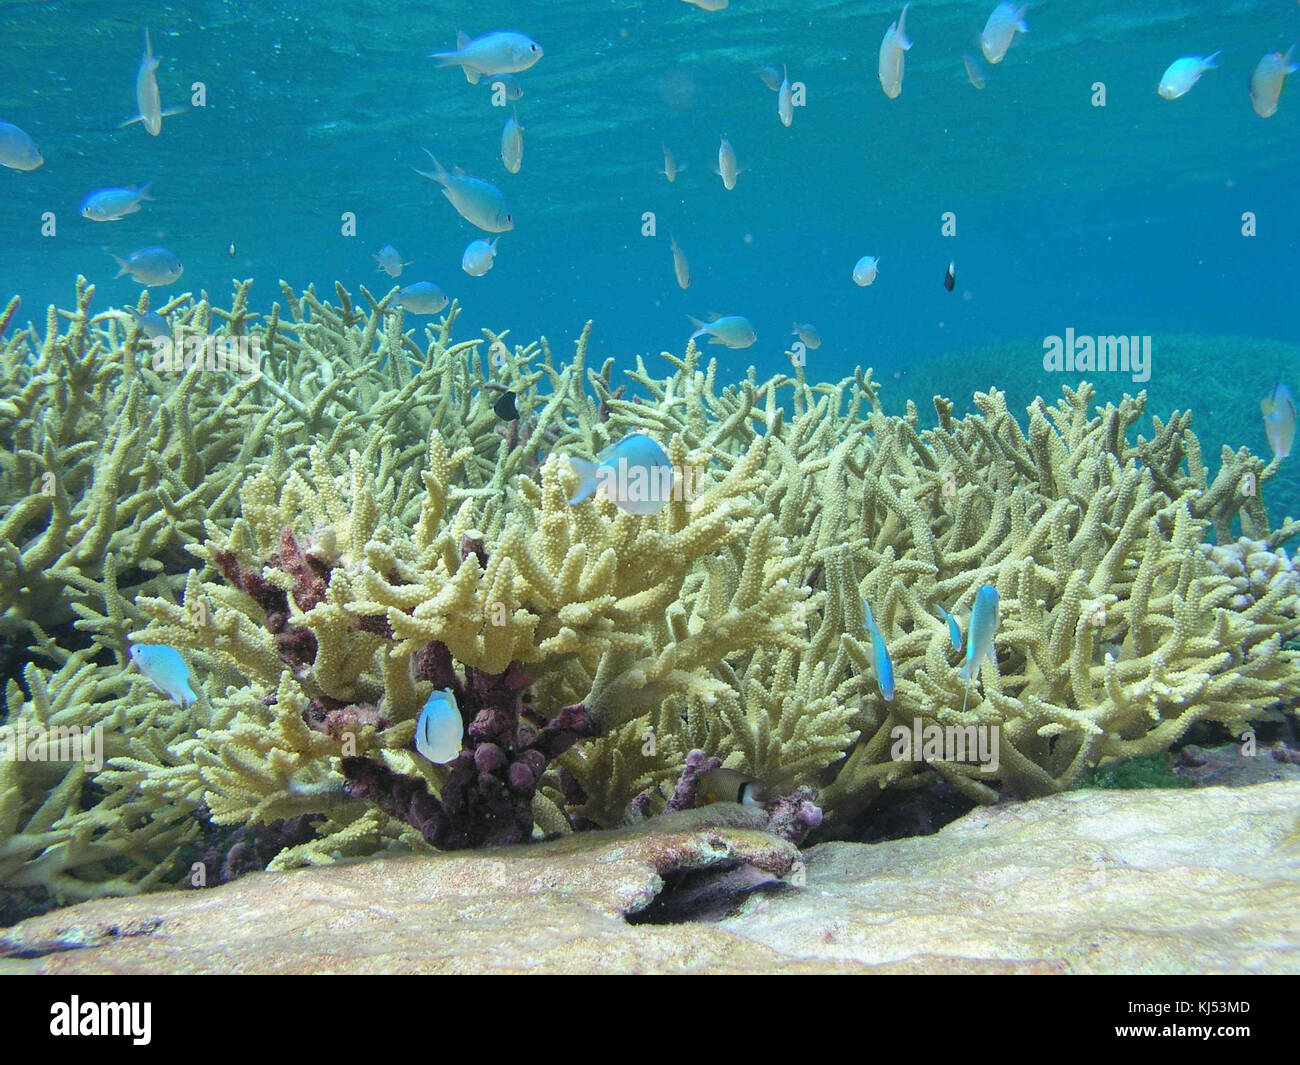 Chromis reef fish and staghorn coral underwater scenic - Stock Image